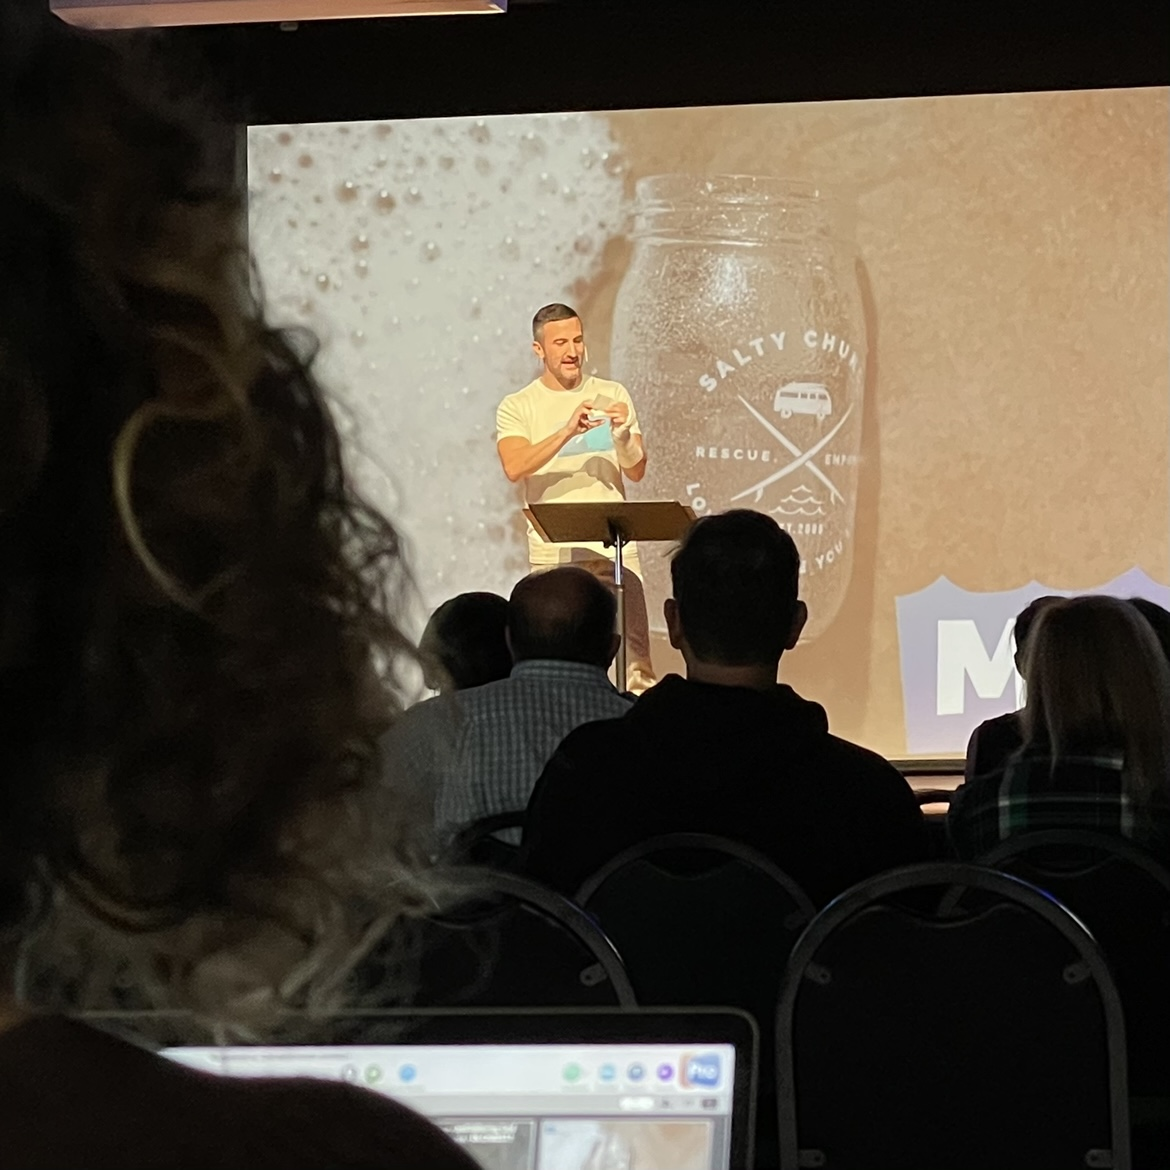 Msan speaking from stage with a screen behind him with a mason jar that reads Salty Church.